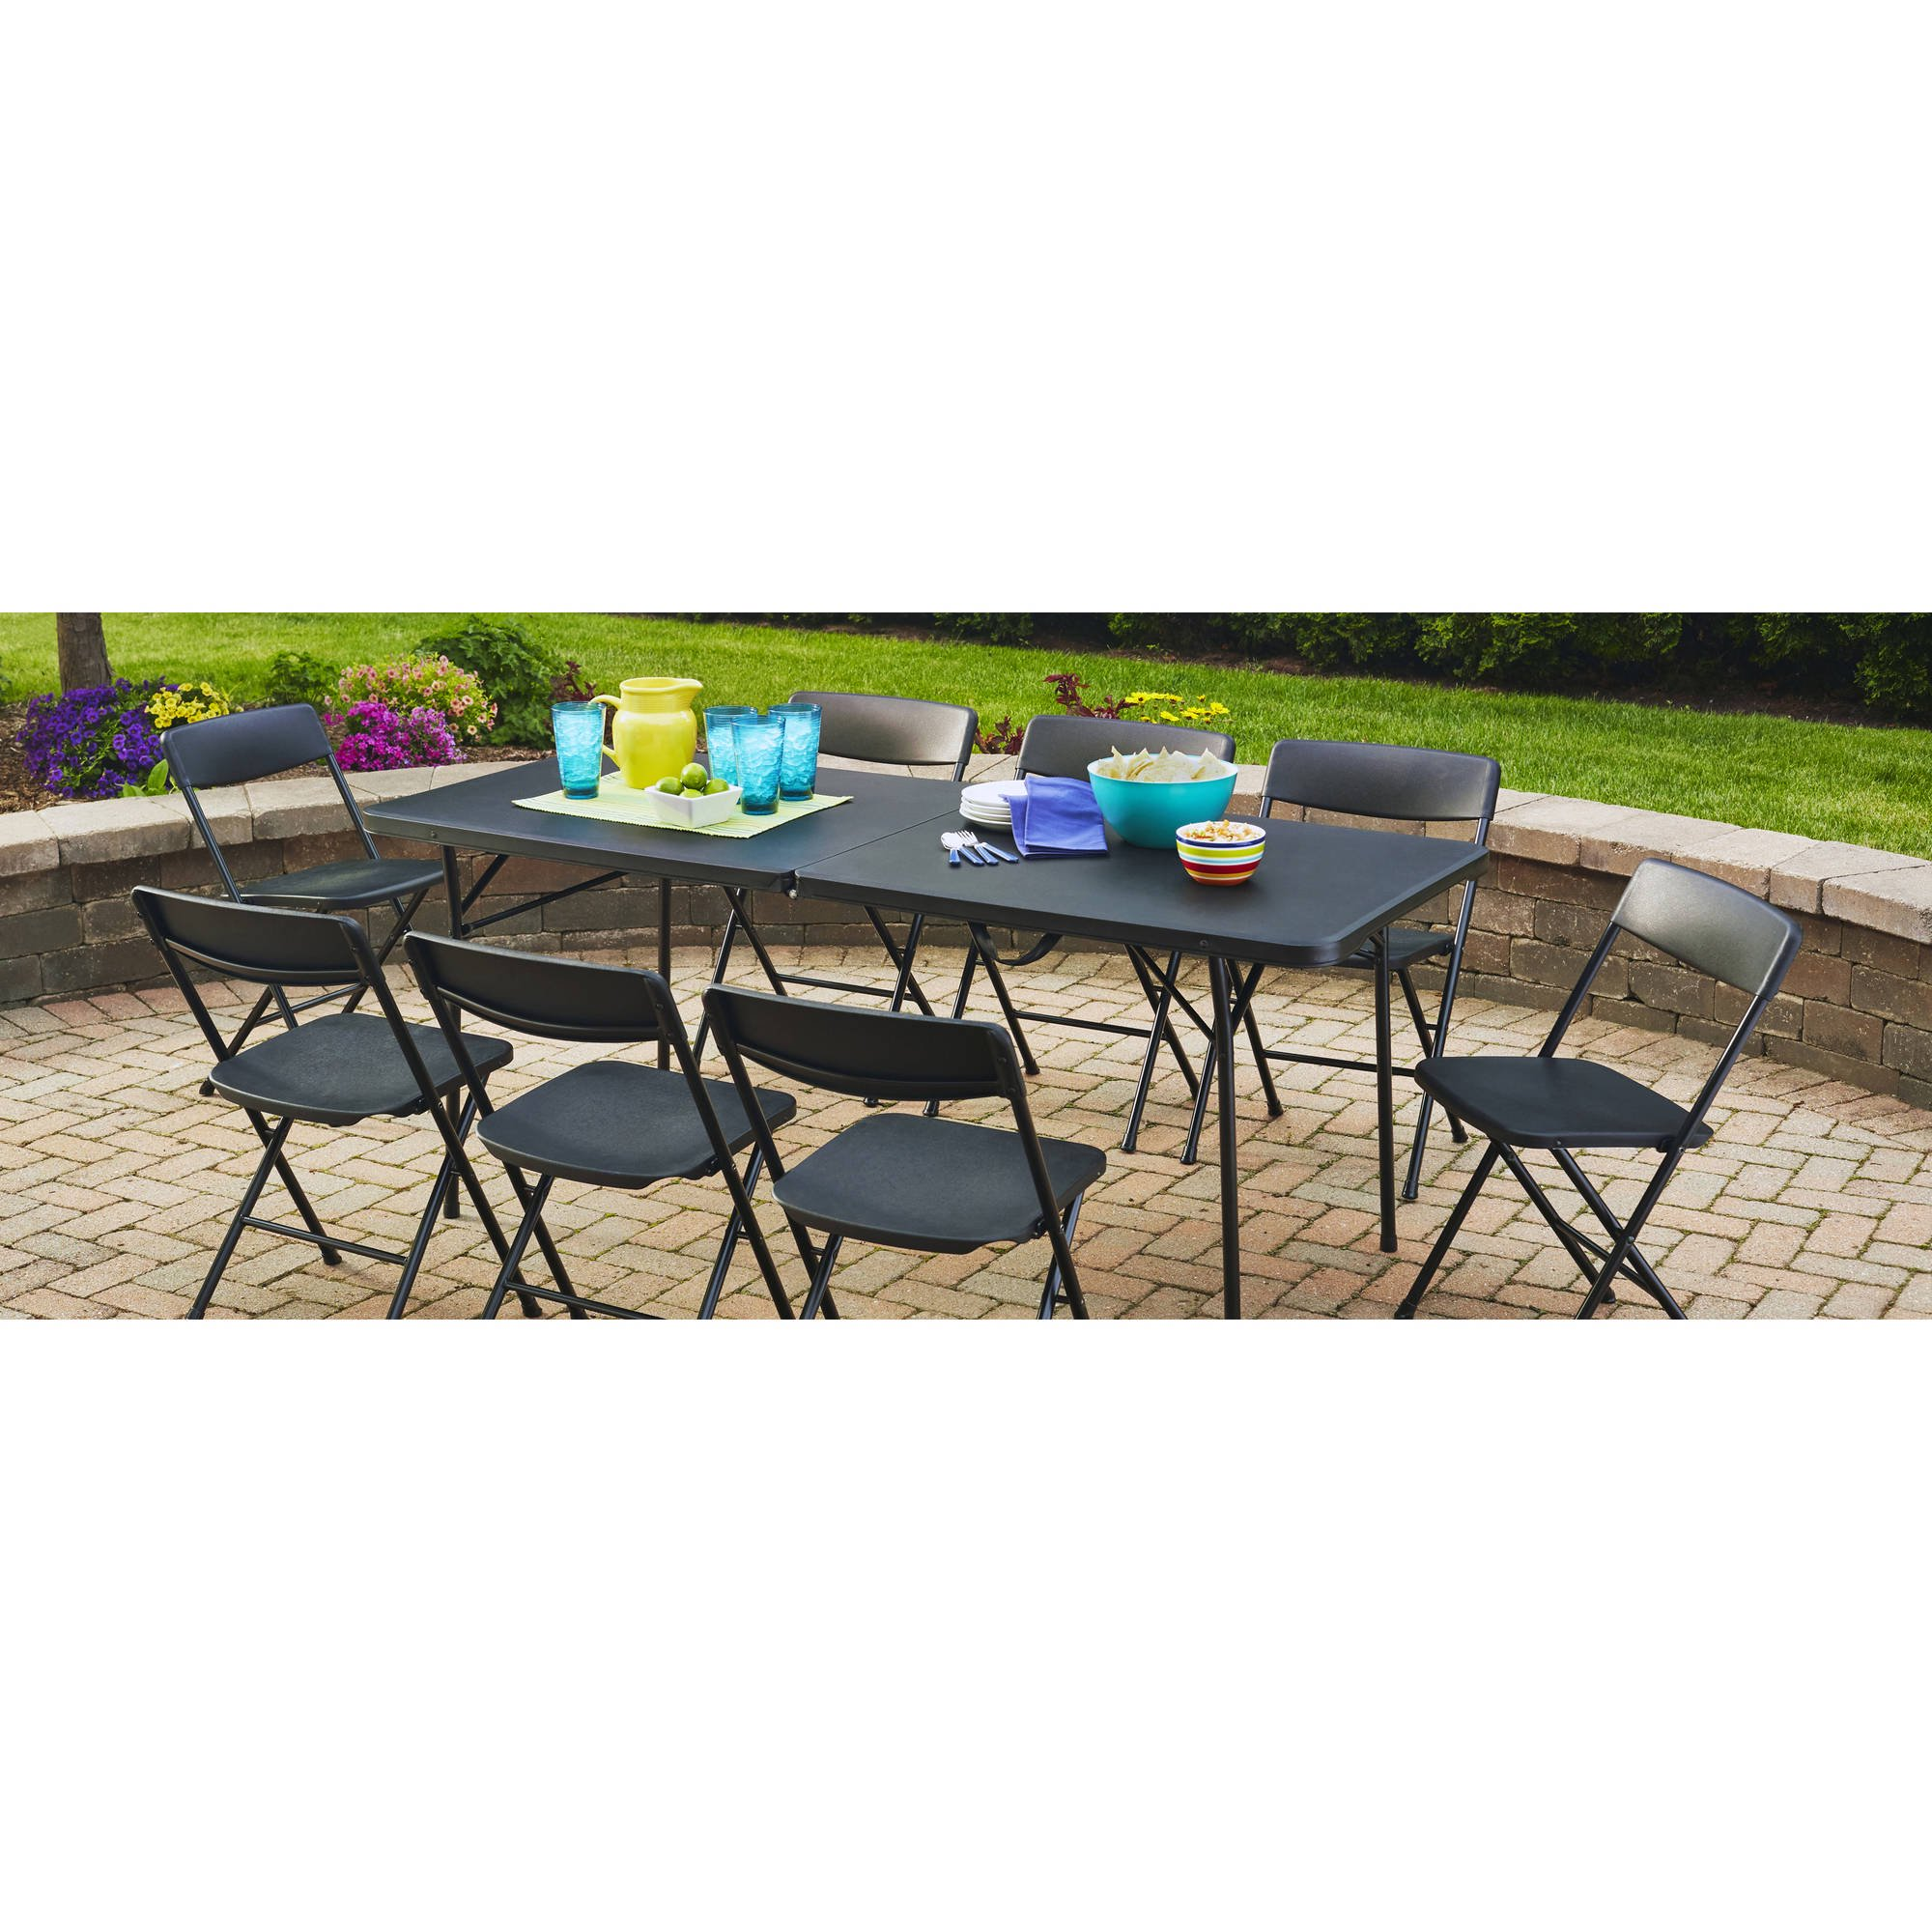 Awesome Mainstays 6u0027 Fold In Half Table, Black